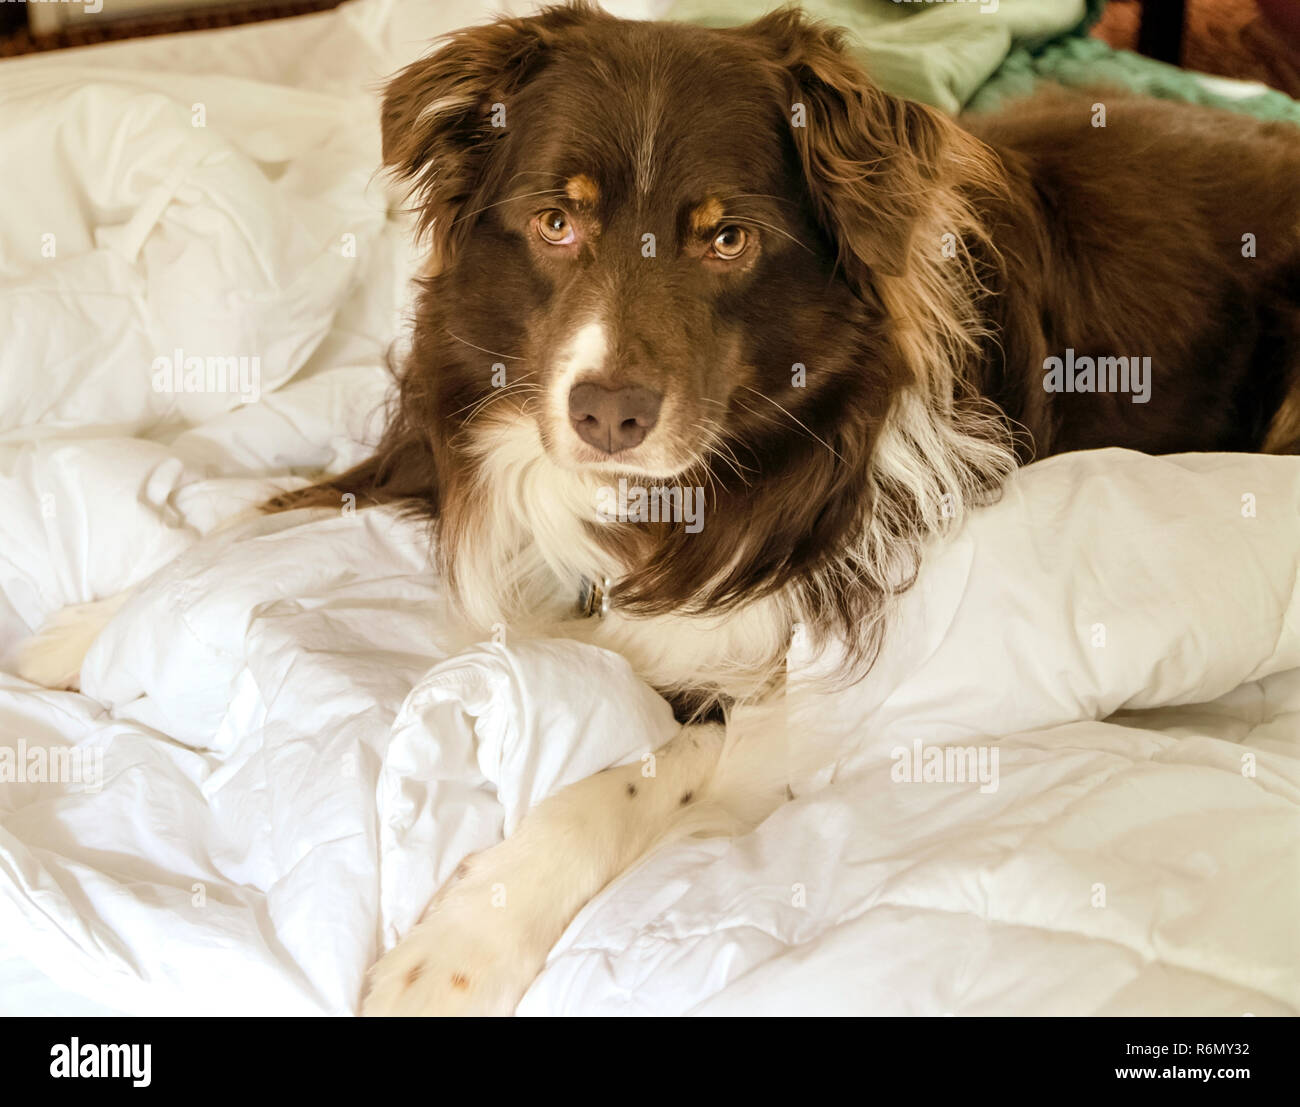 Cowboy A Six Year Old Australian Shepherd Relaxes In His Hotel